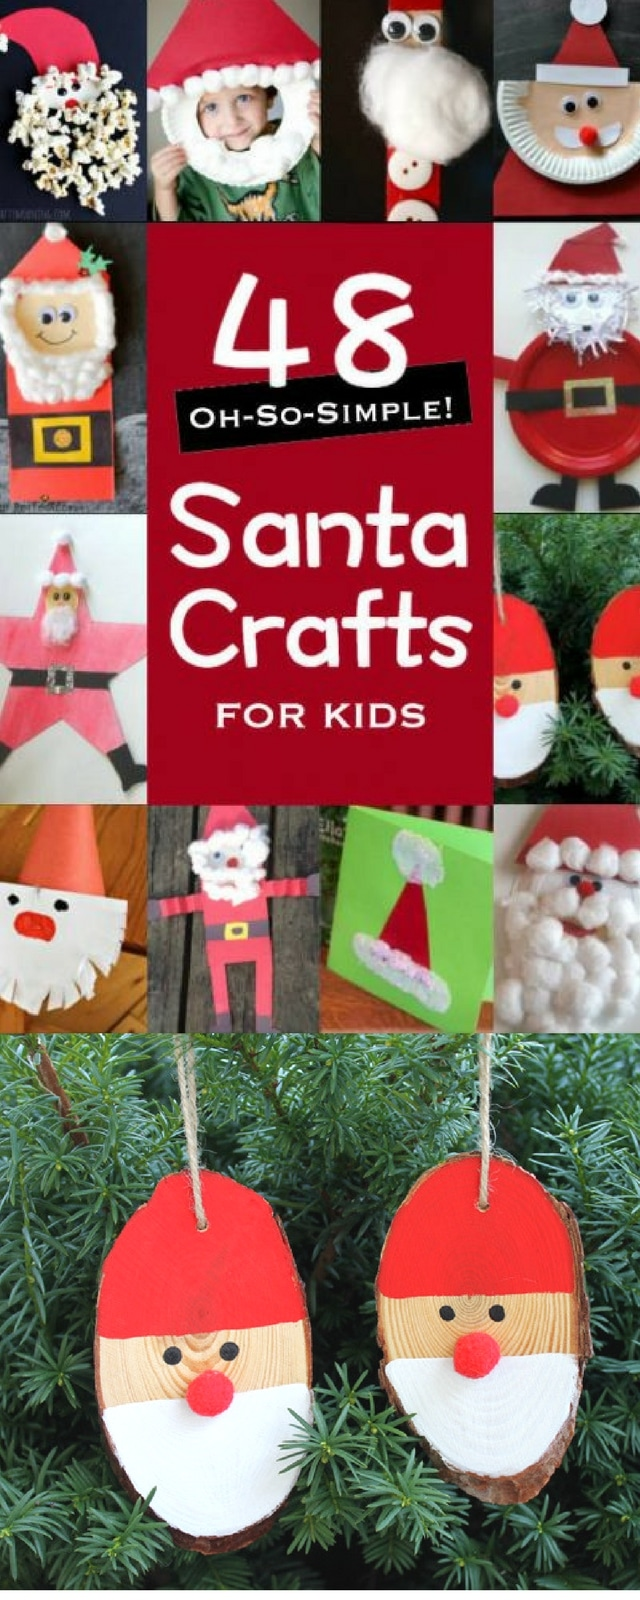 48 Santa Crafts for Kids to Make! Oh-So-Simple!